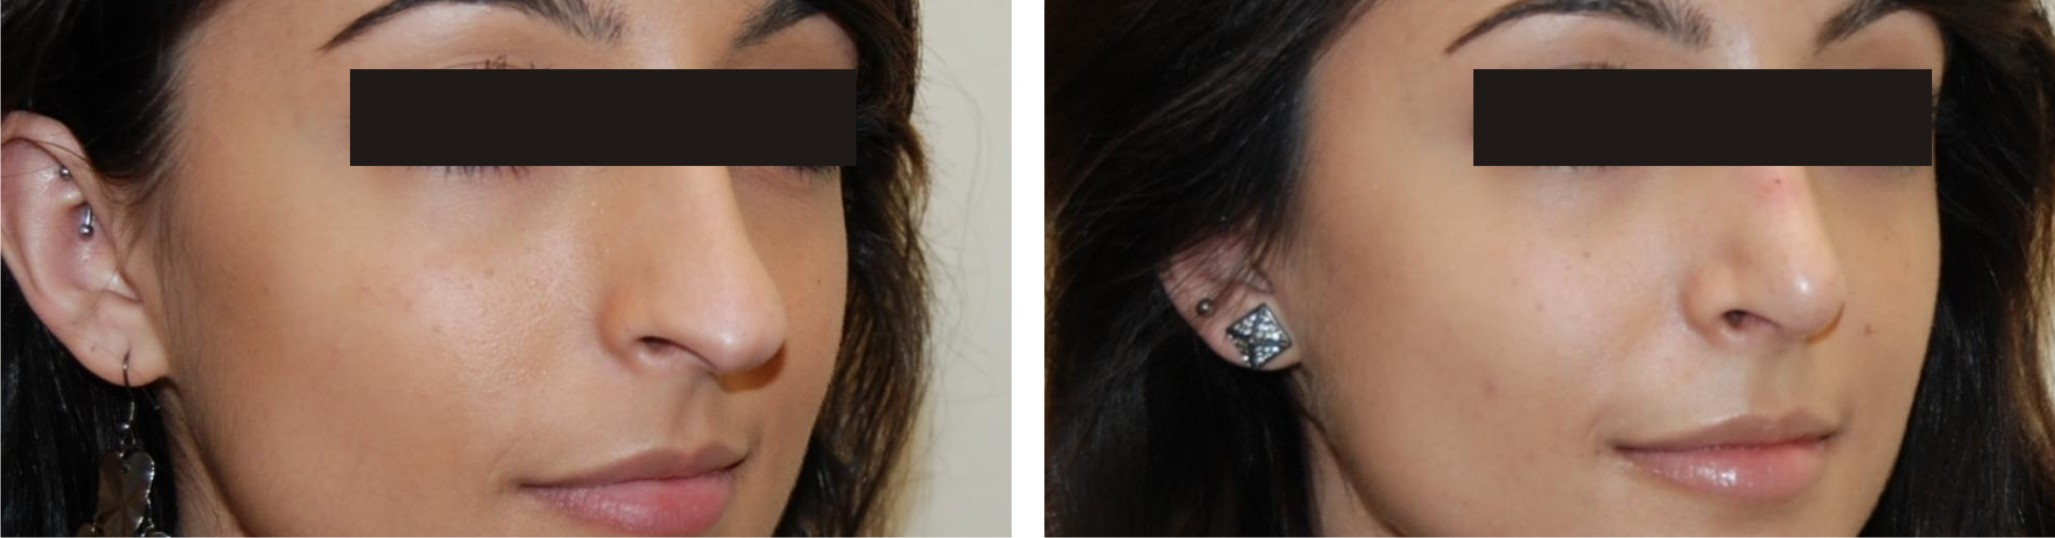 Nose Reshaping Image One